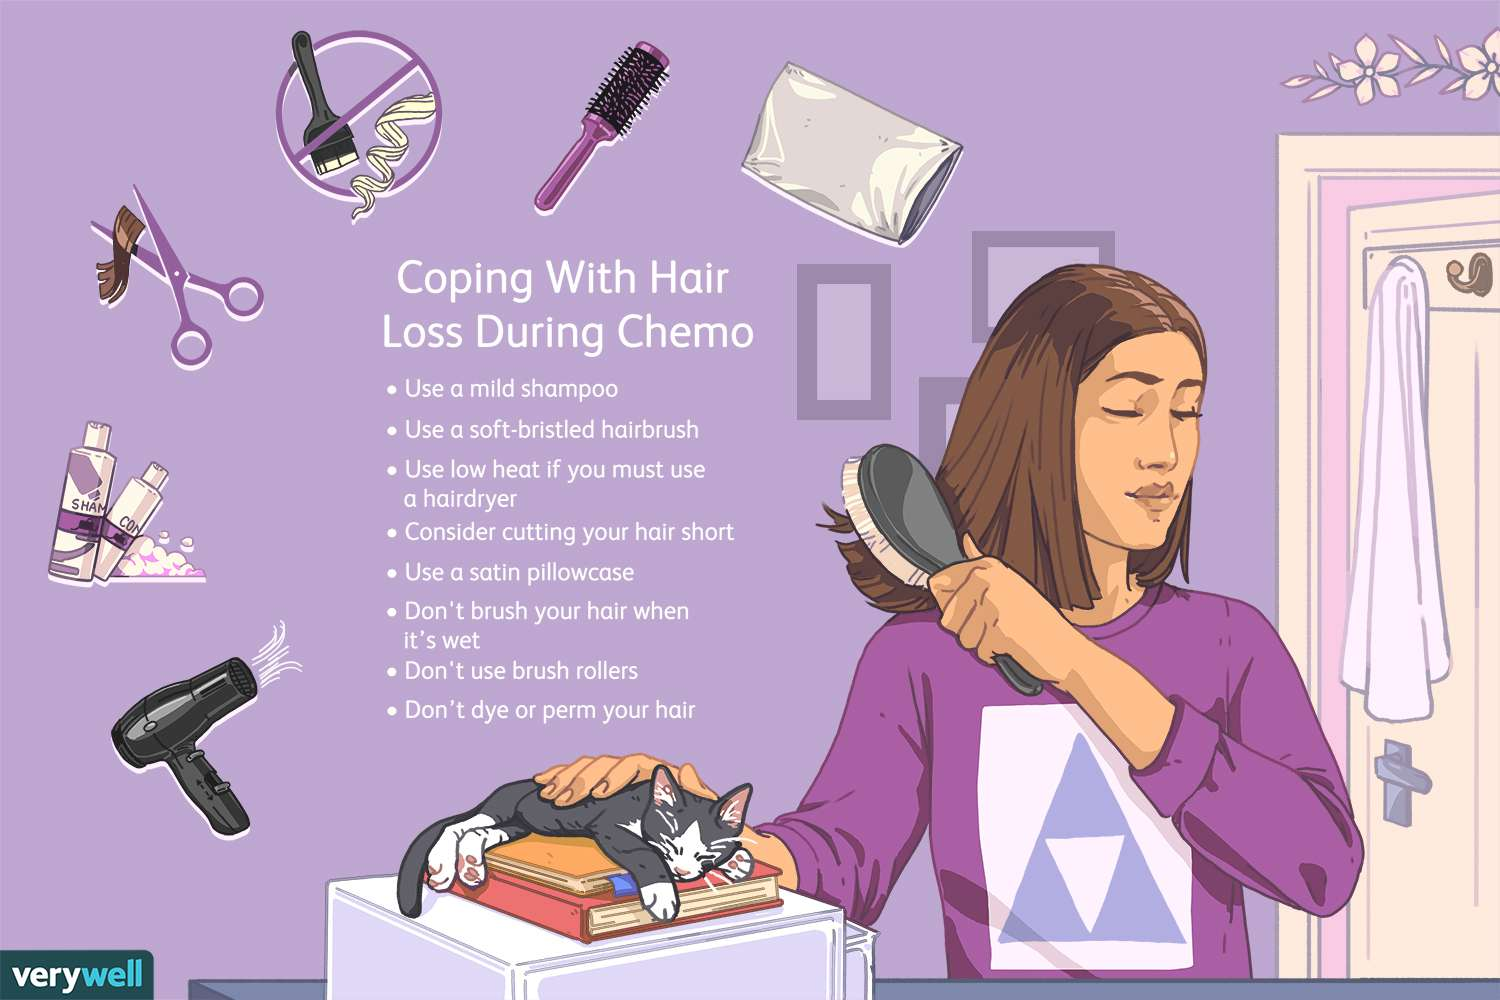 Coping with hair loss during chemo.